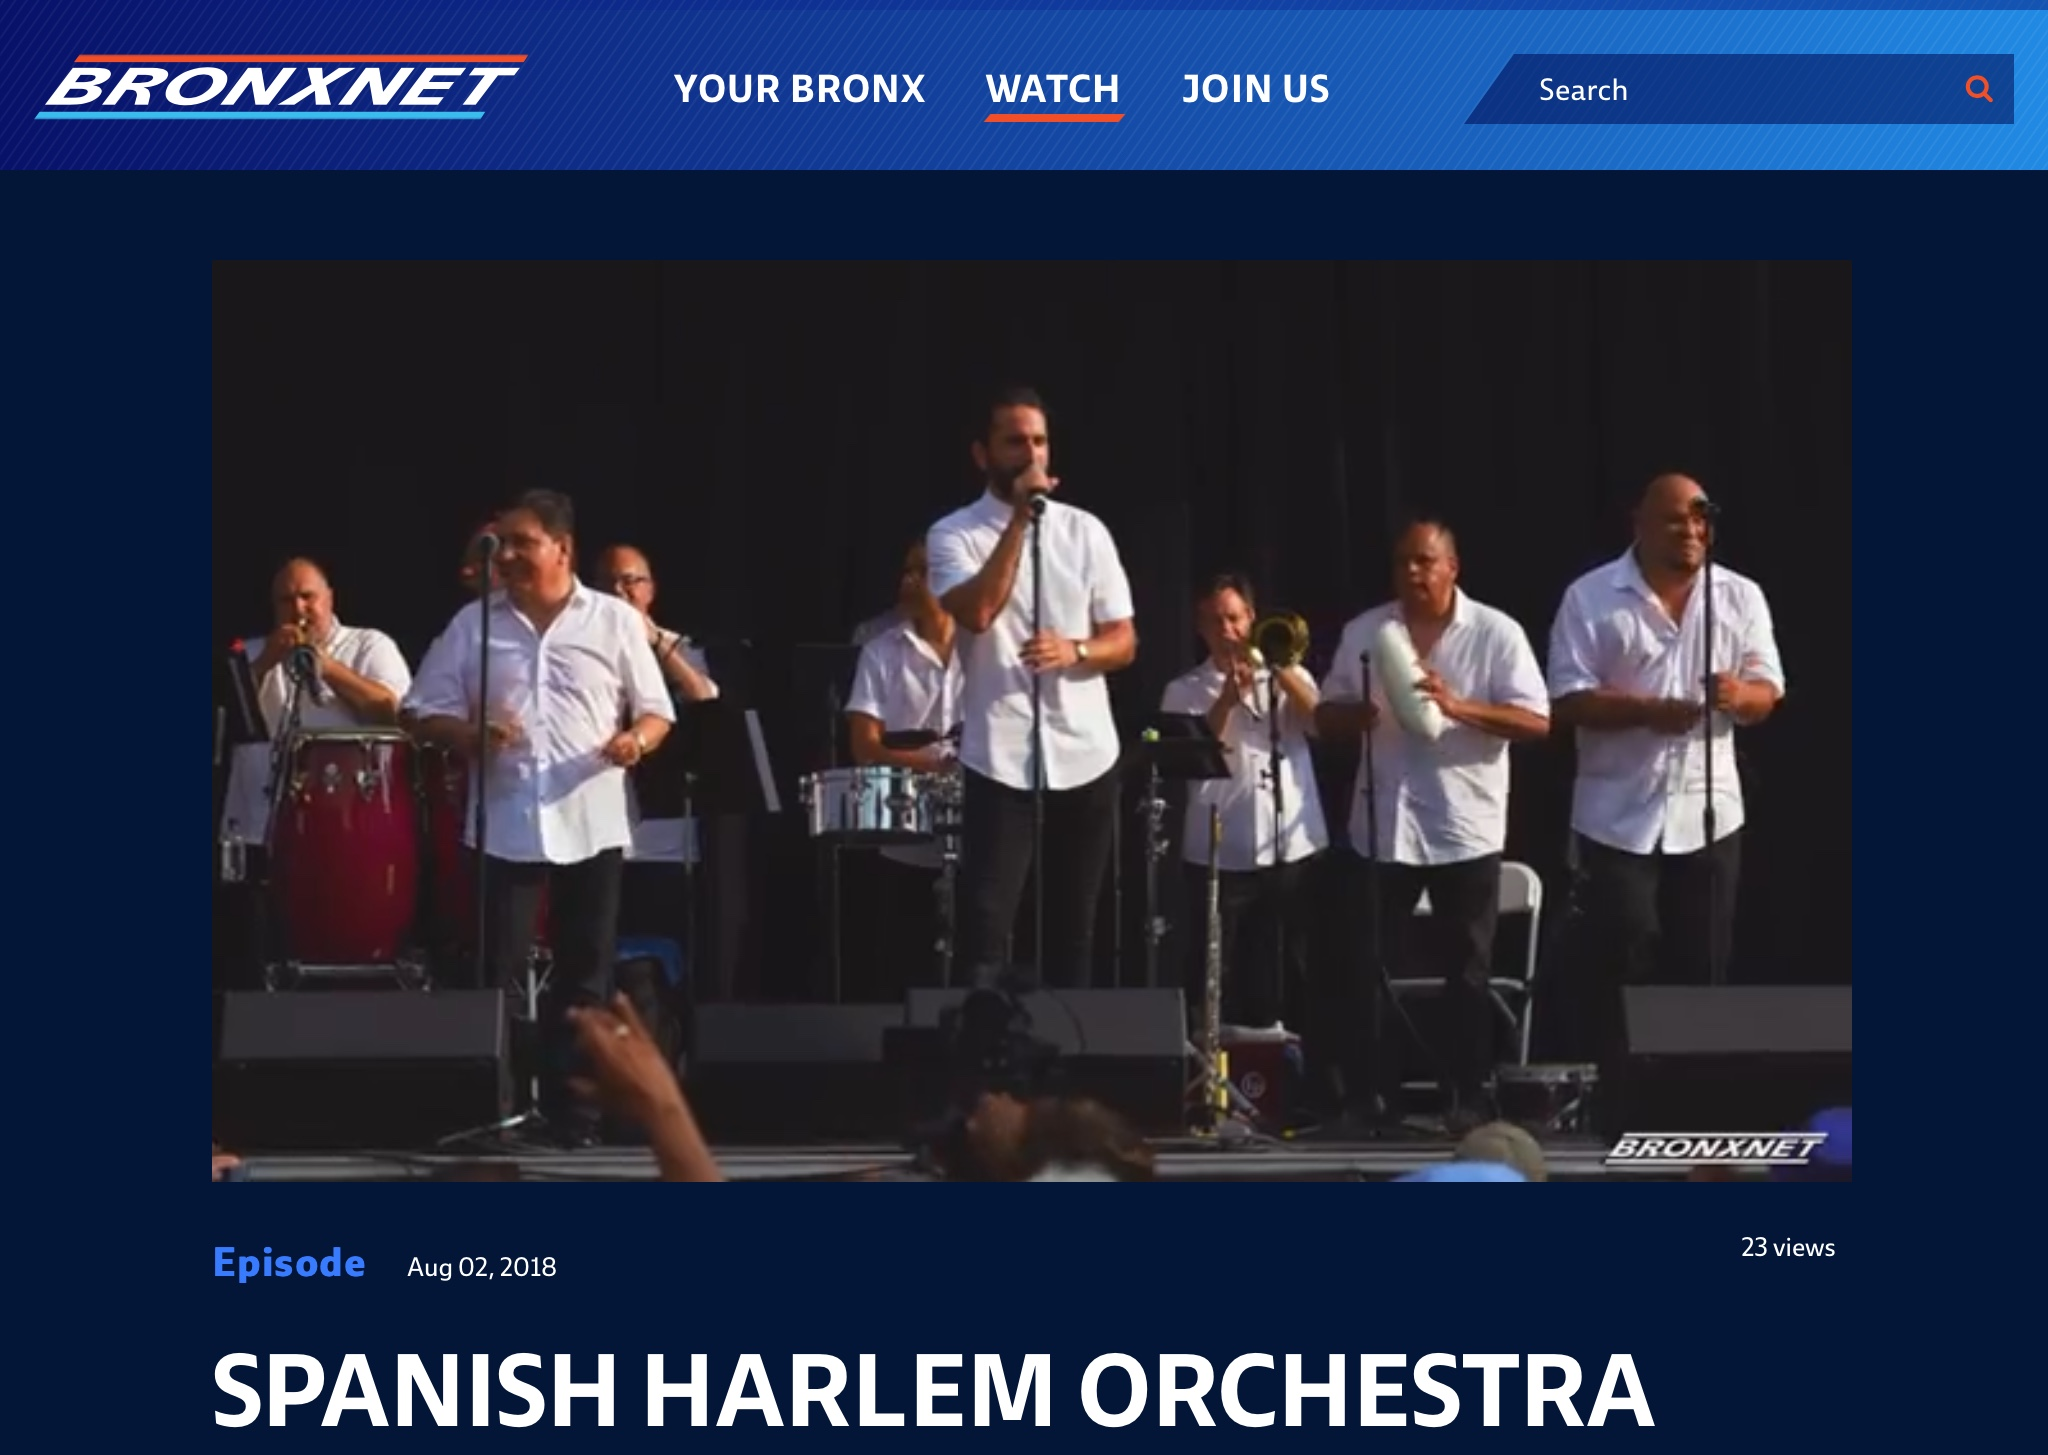 INTERVIEW: Bronx Net Interviews Spanish Harlem Orchestra at Recent SummerStage NYC Performance